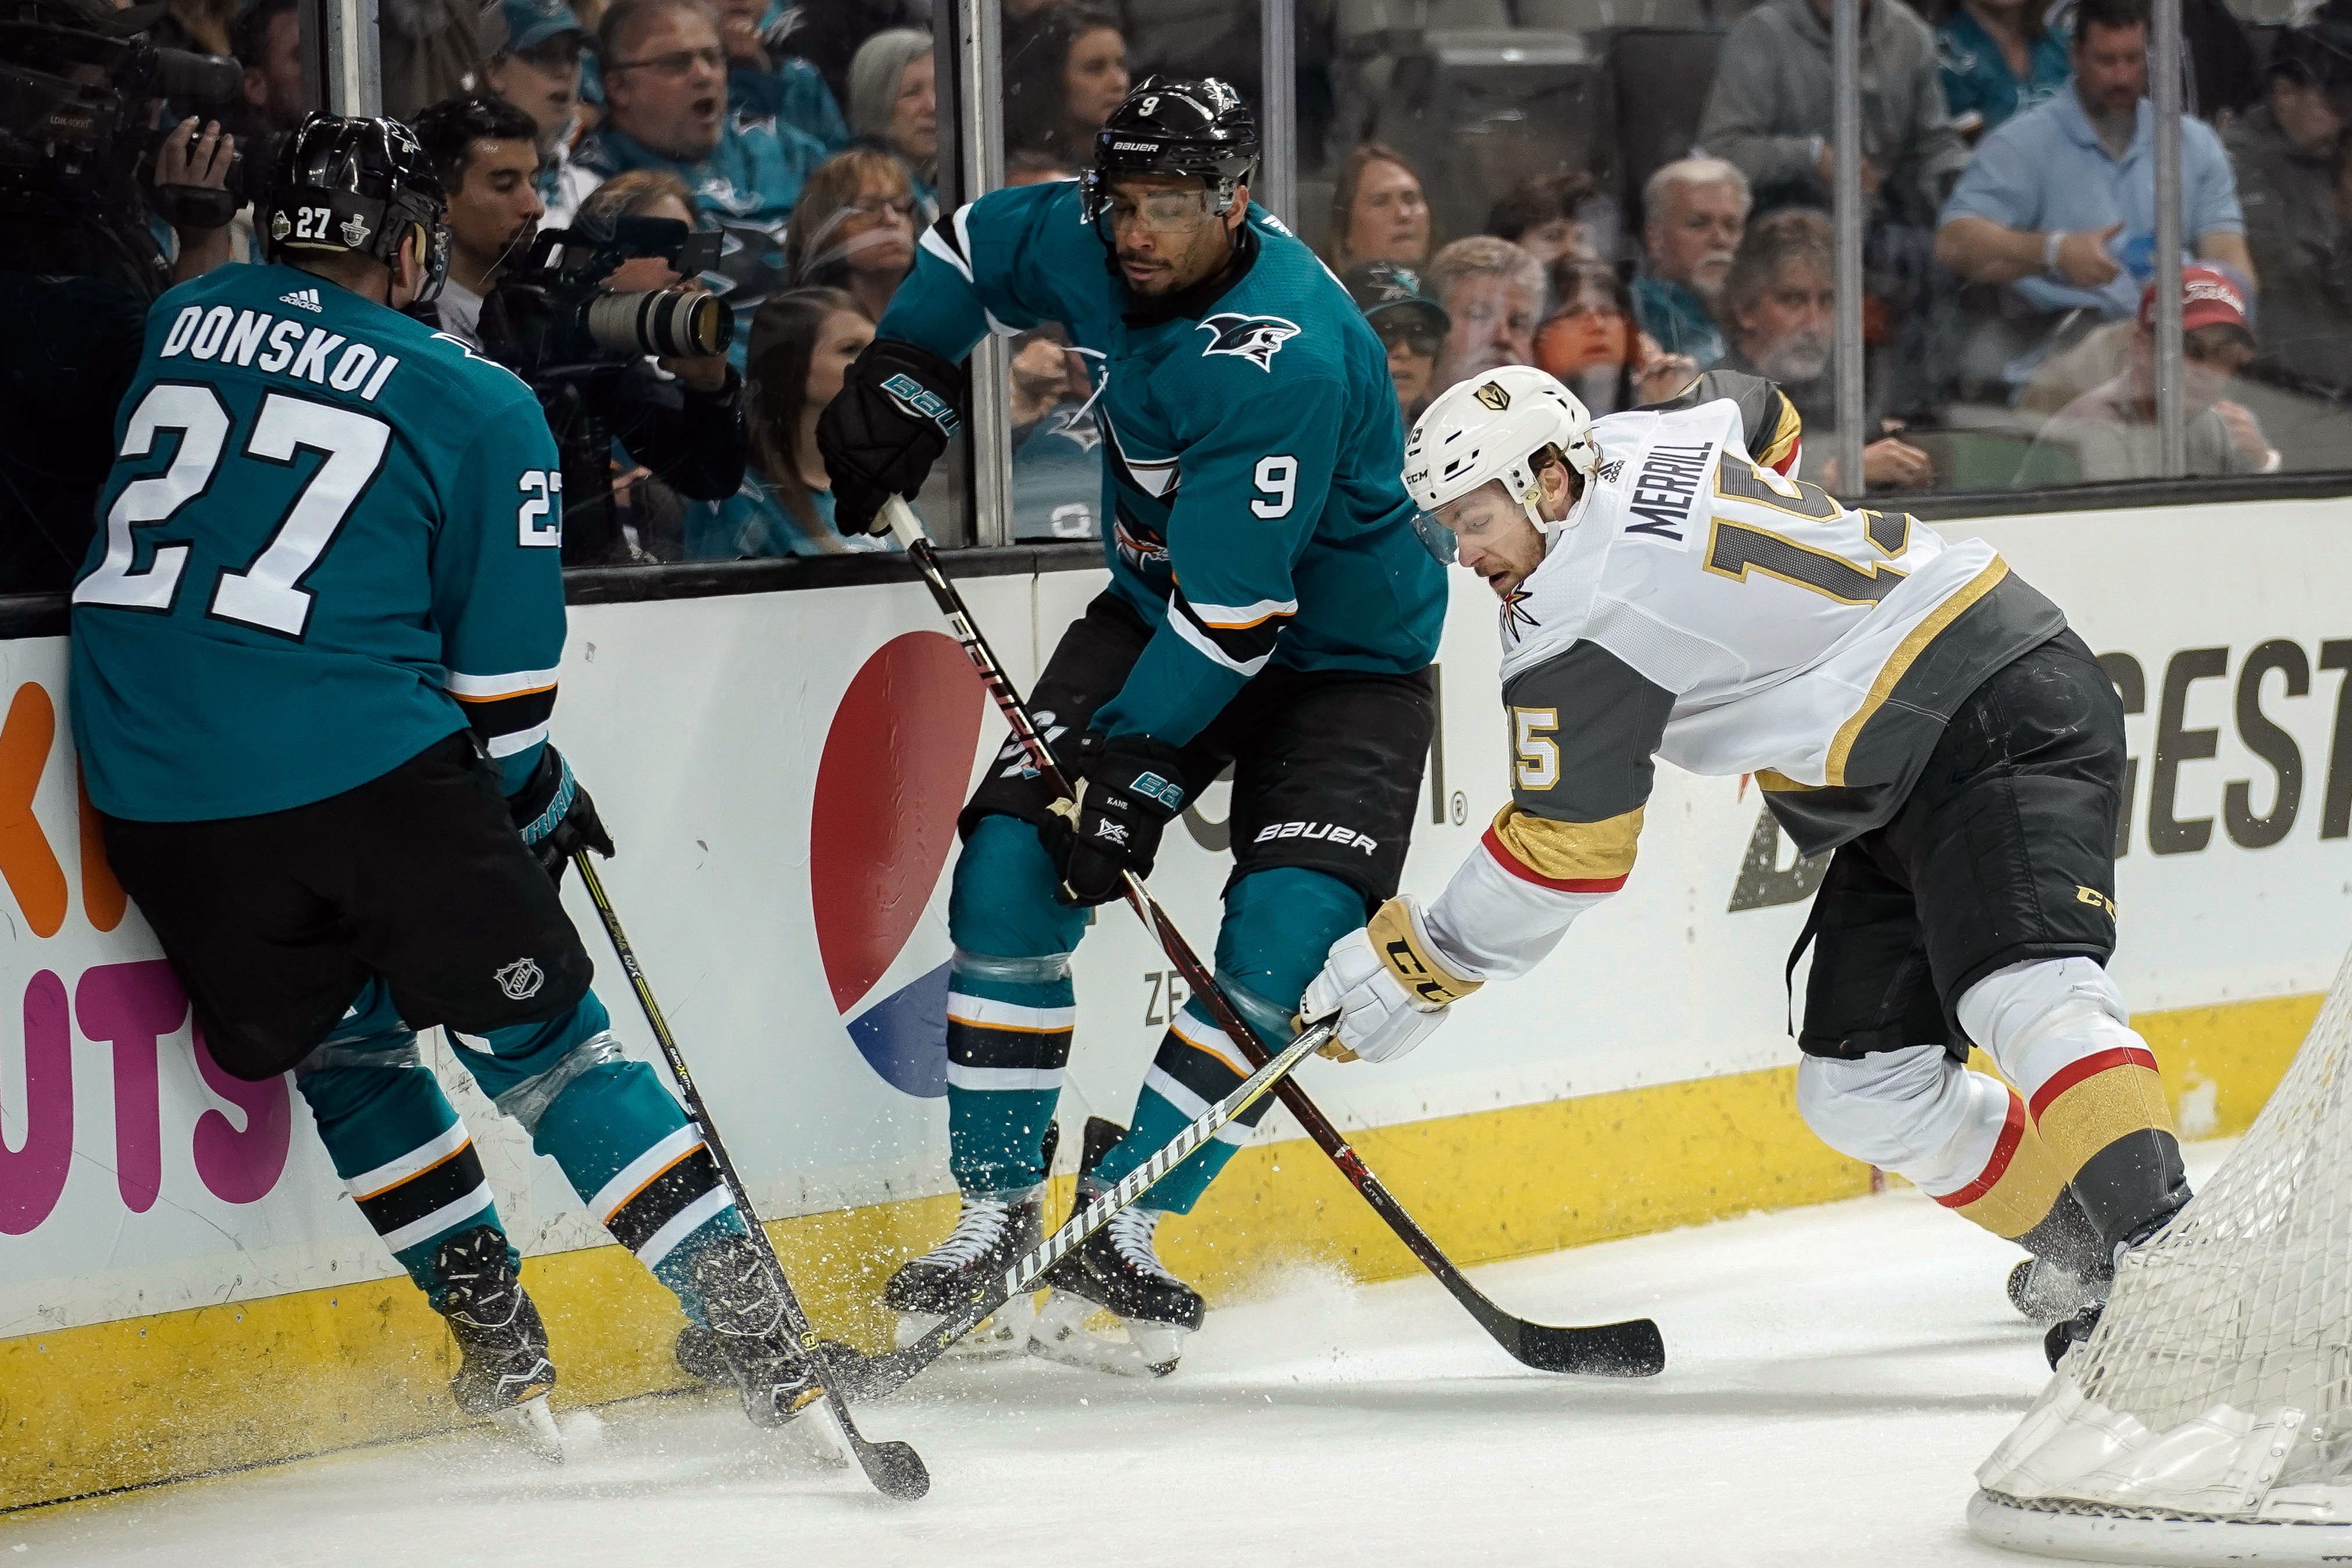 May 2, 2018; San Jose, CA, USA; Vegas Golden Knights defenseman Jon Merrill (15) fights for control of the puck against San Jose Sharks right wing Joonas Donskoi (27) and left wing Evander Kane (9) during the second period in game four of the second round